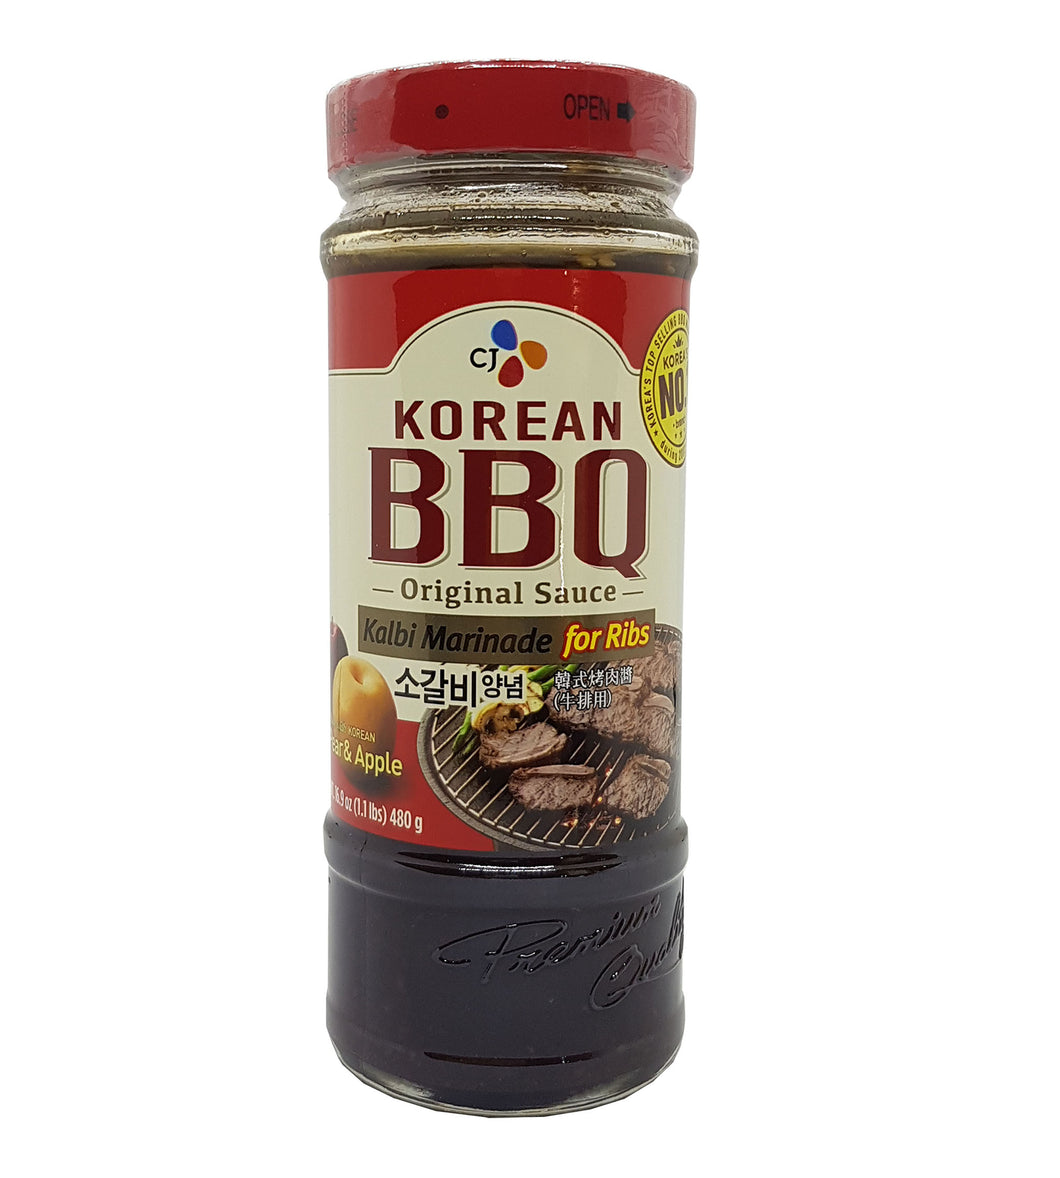 CJ Korean BBQ Sauce Kalbi Marinade for Ribs 17.6 Oz.